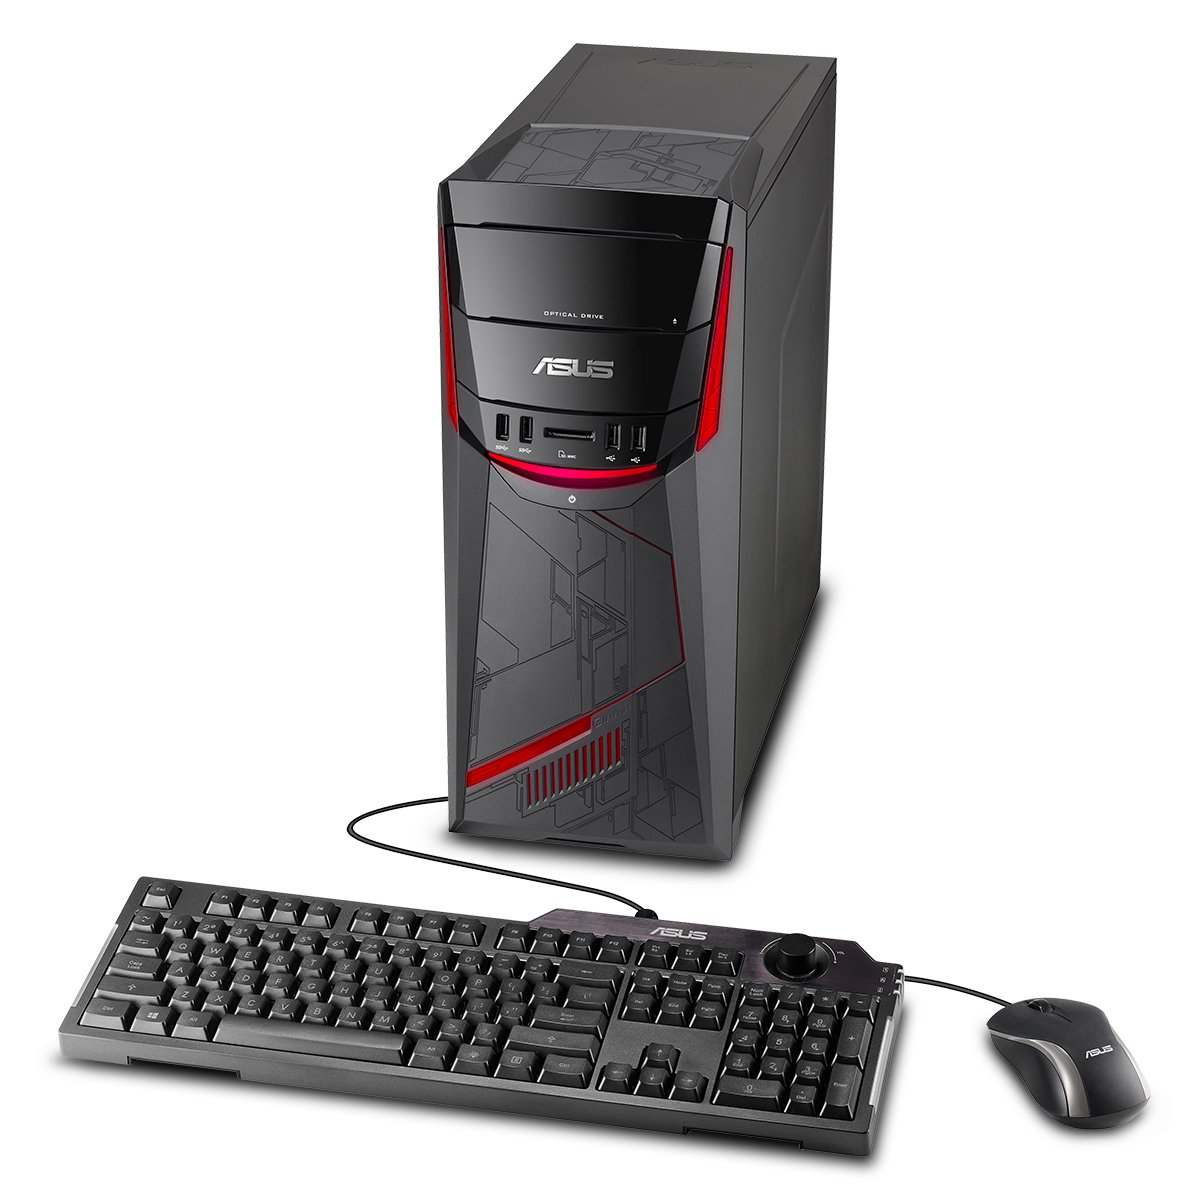 ASUS G11CD Gaming Desktop